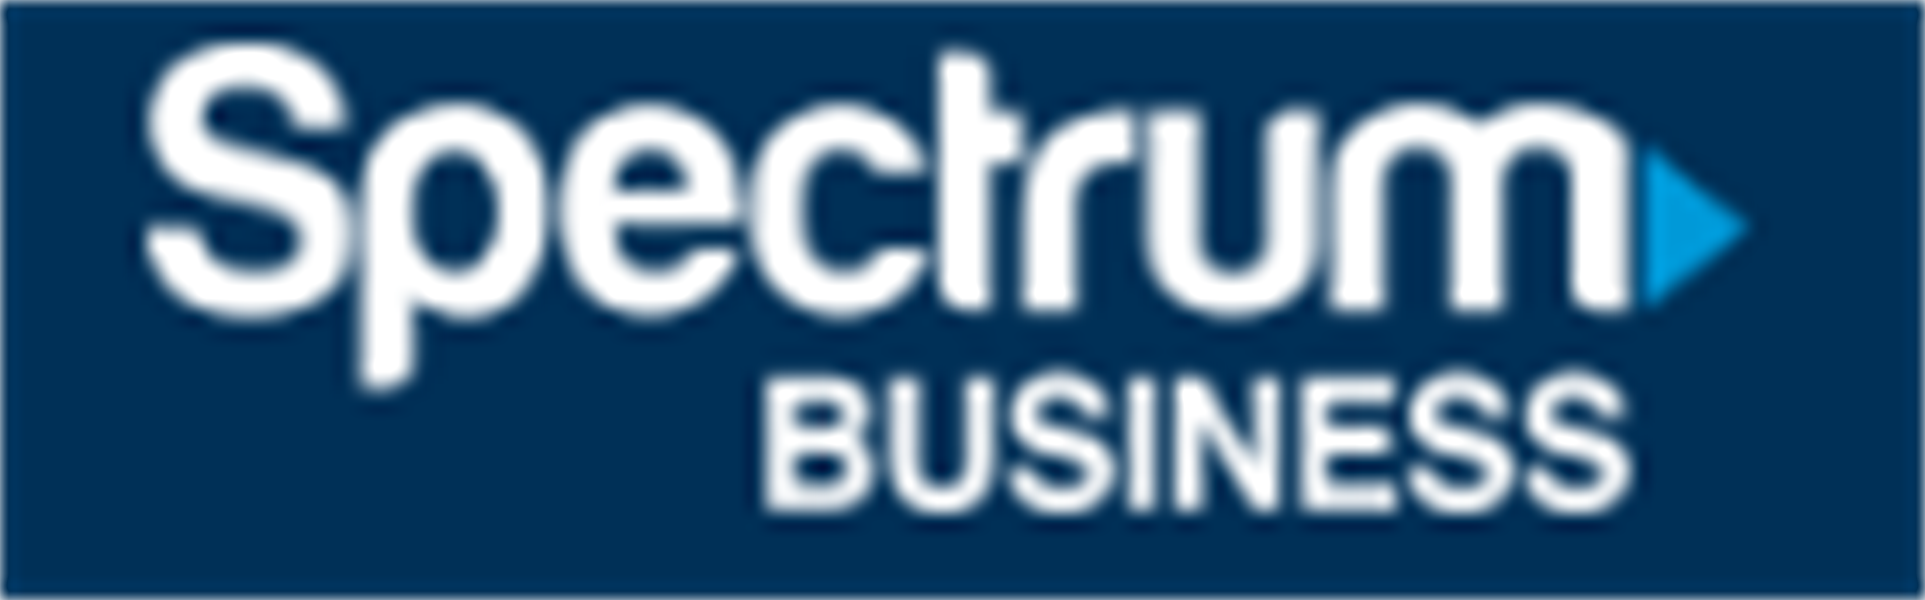 Spectrum Business